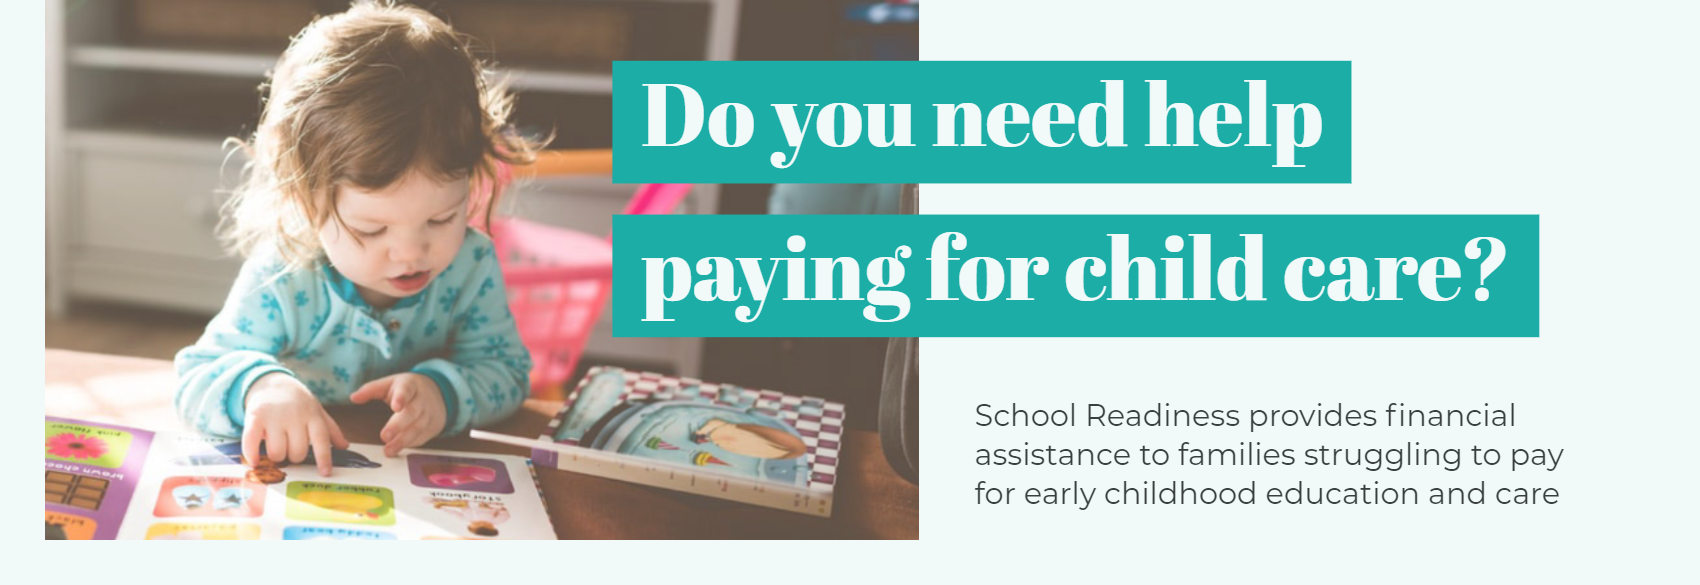 Do you need help paying for child care?